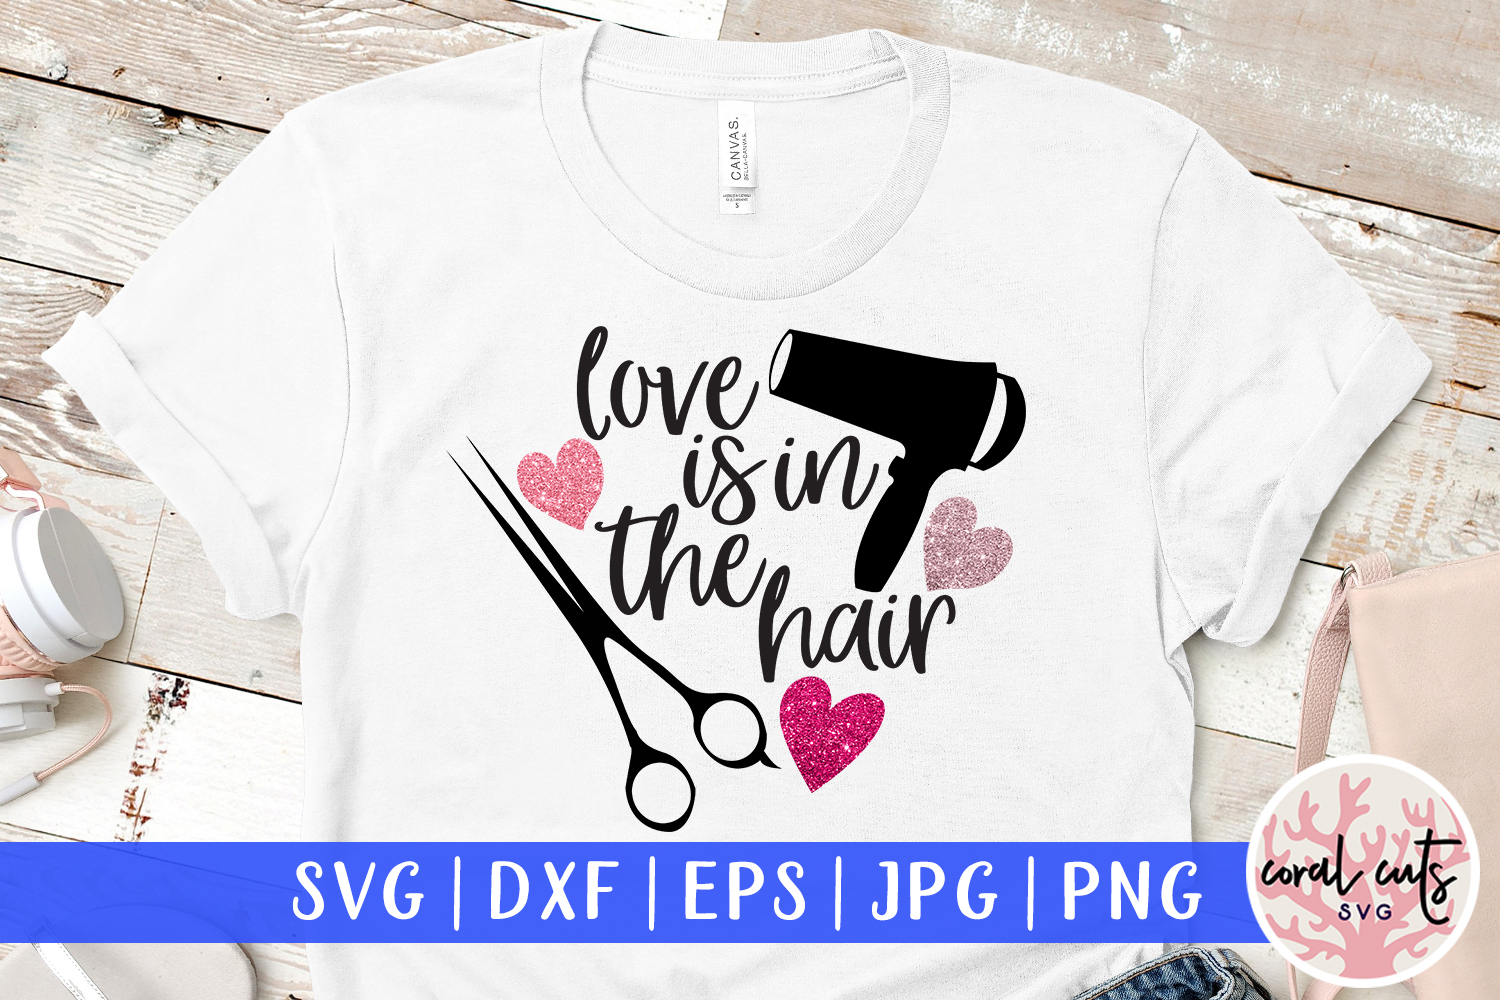 Download Free Love Is In The Hair Graphic By Coralcutssvg Creative Fabrica for Cricut Explore, Silhouette and other cutting machines.